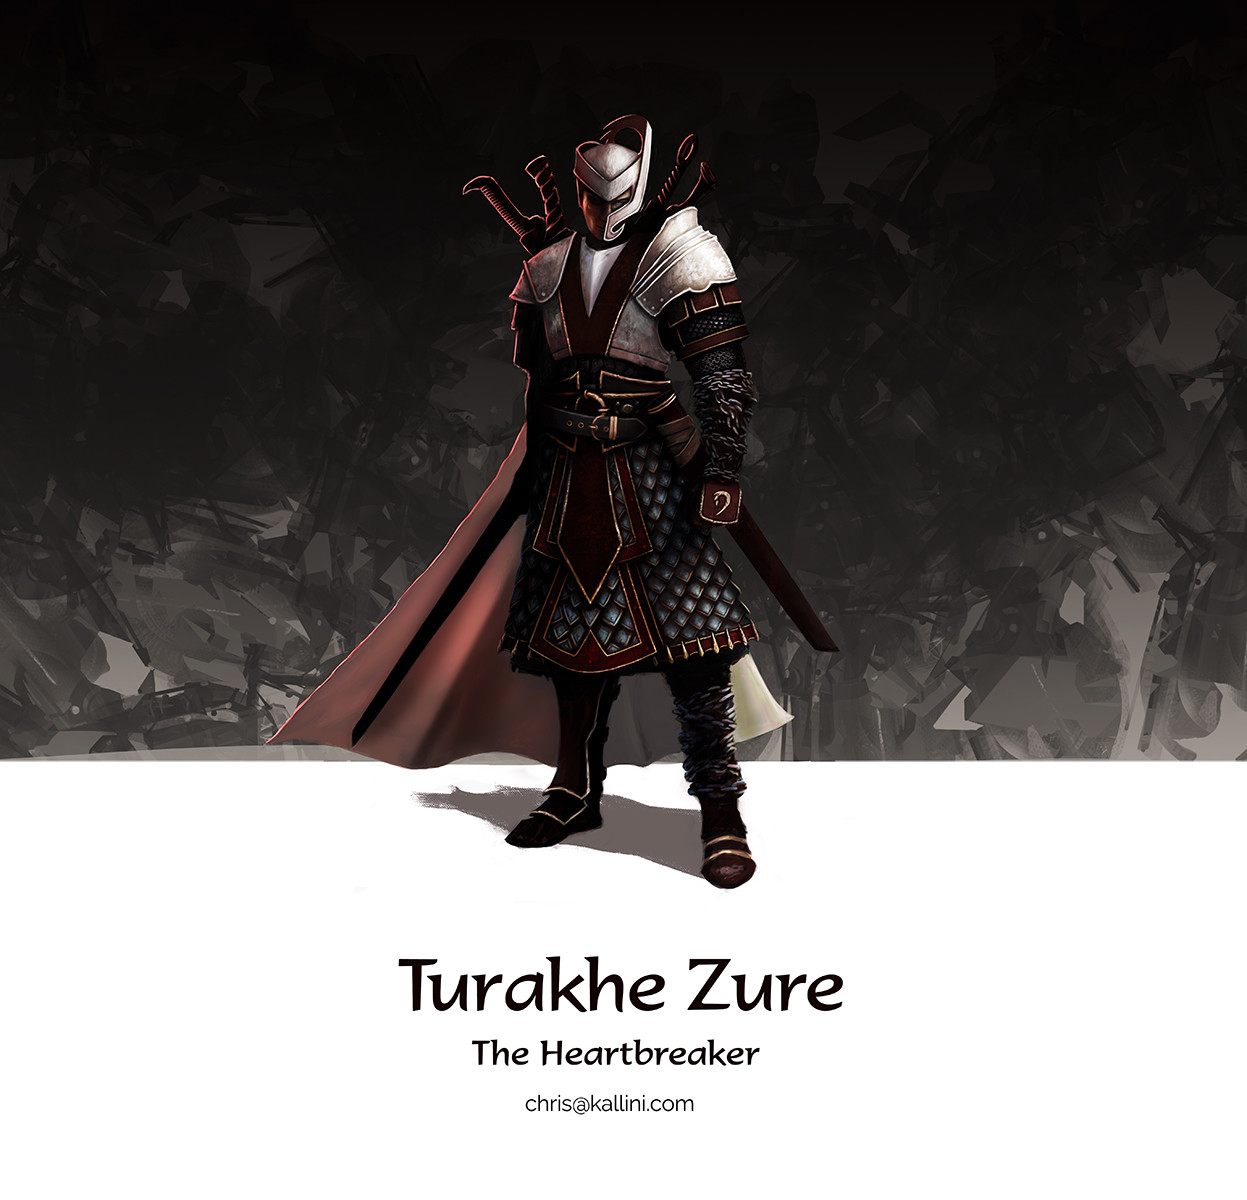 Turakhe Zure - The Heartbreaker